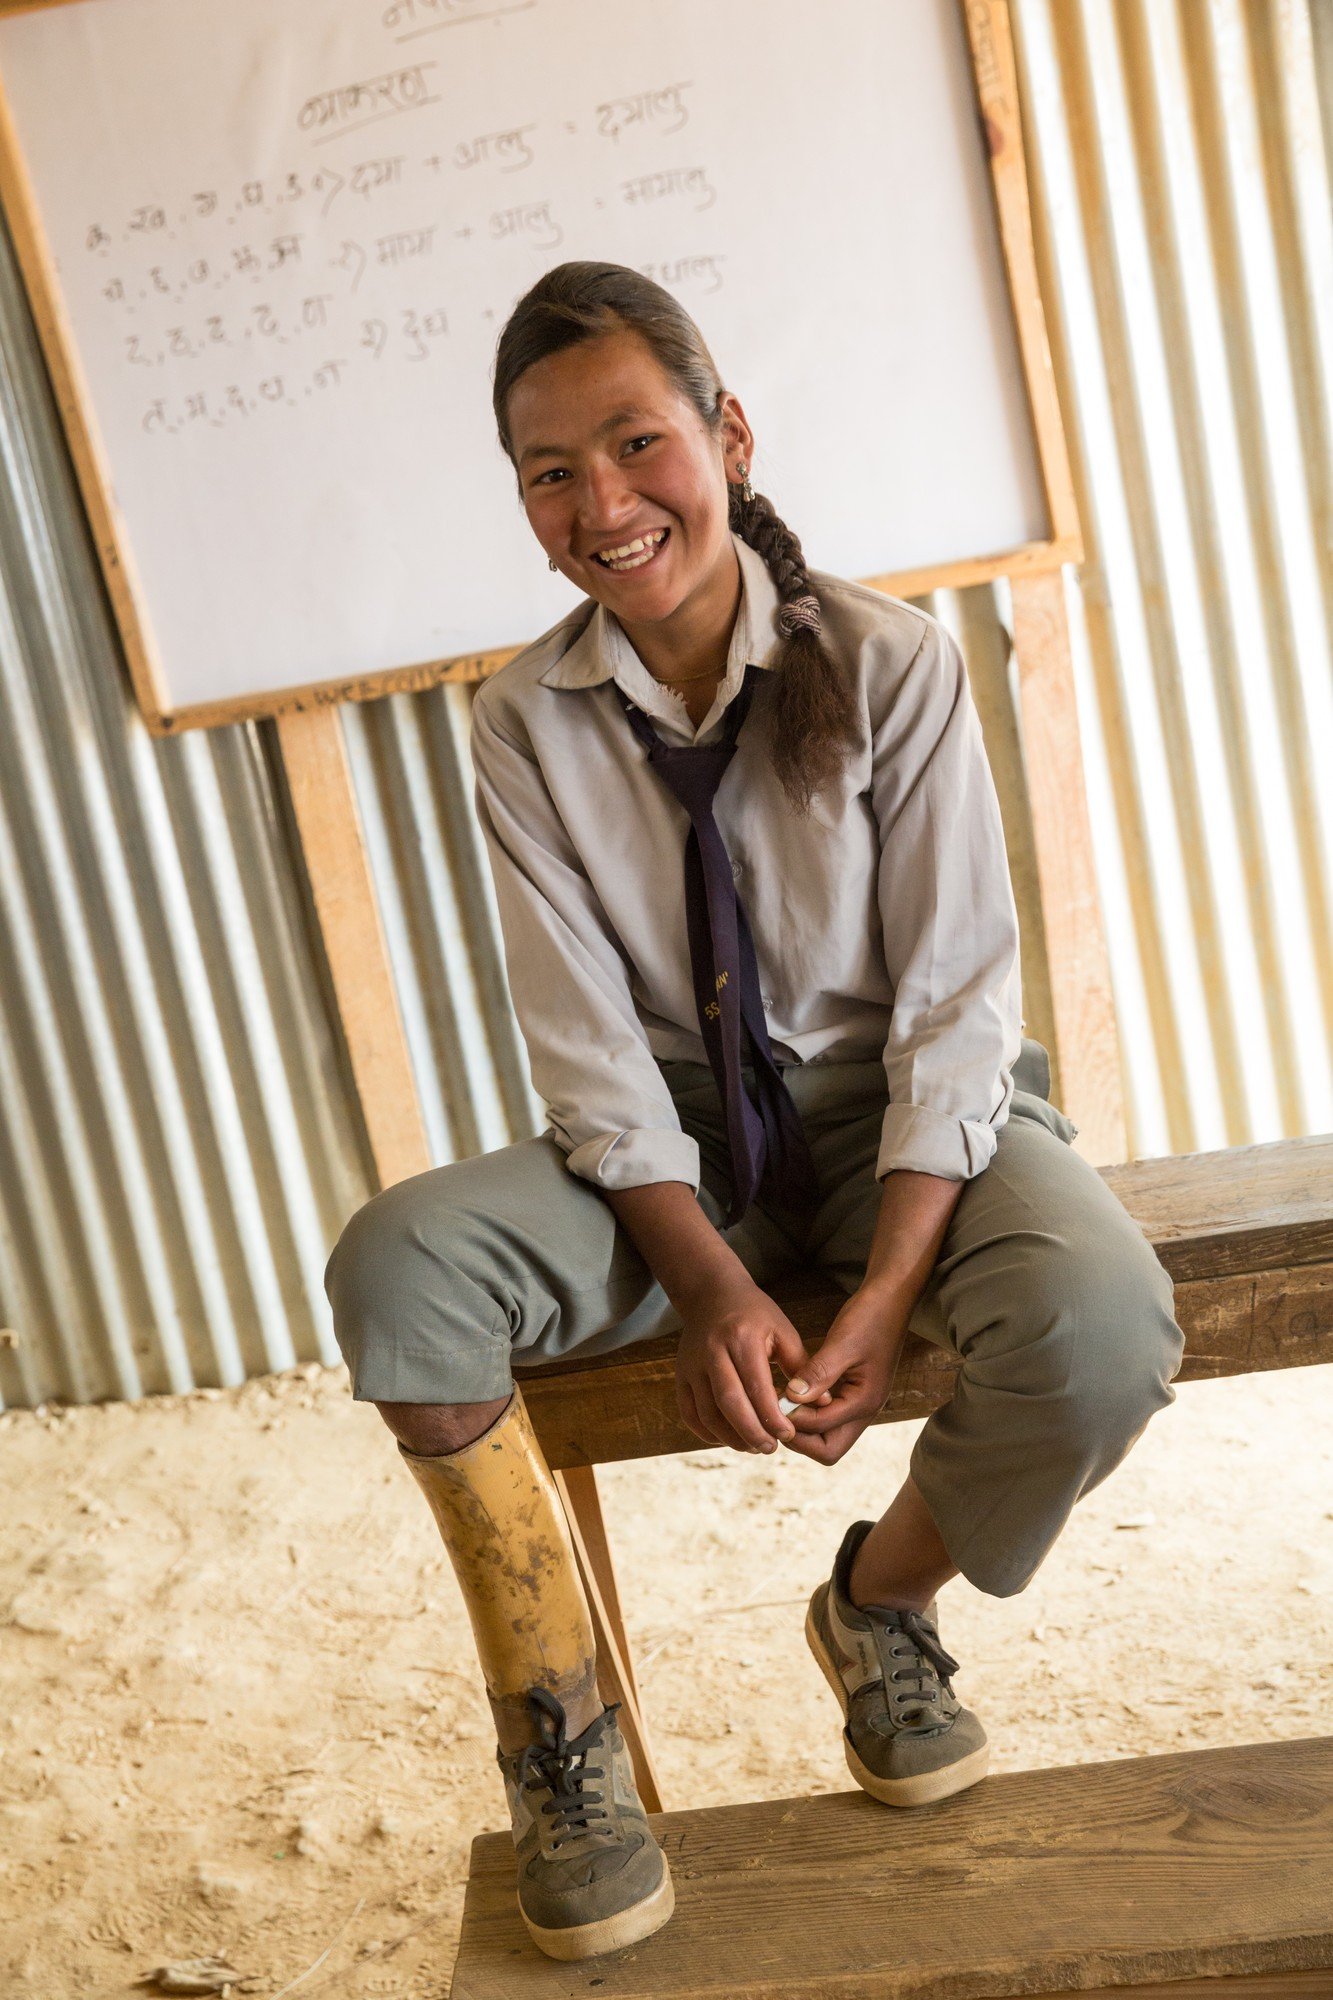 Samita's school will be built back after the earthquake to be more accessible